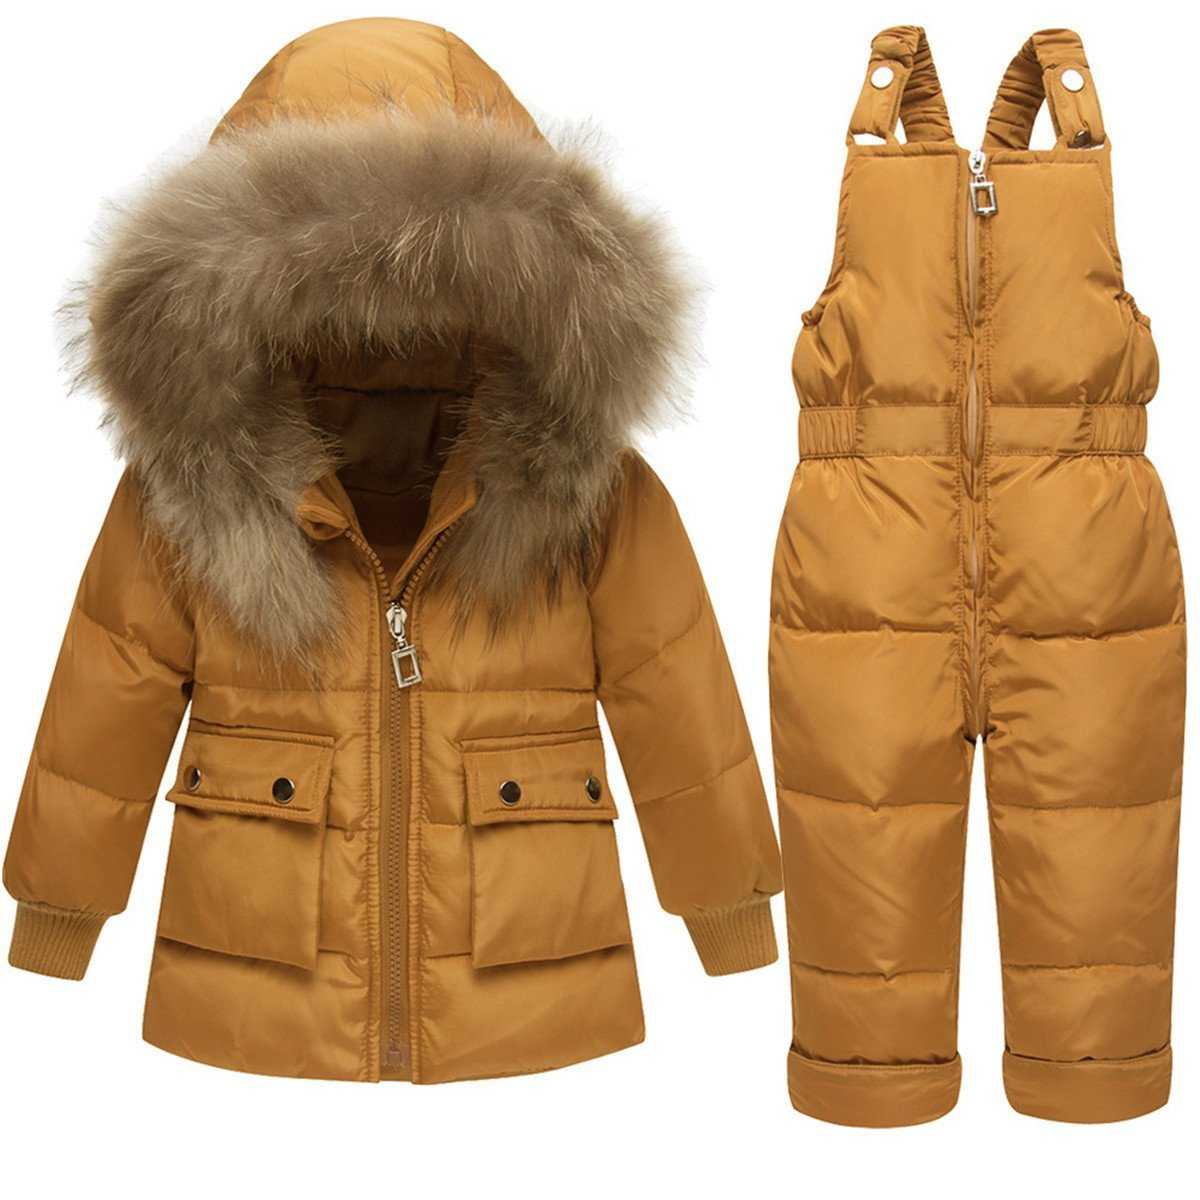 JELEUON Baby Girls Two Piece Winter Warm Hooded Colorful Fur Trim Snowsuit Puffer Down Jacket with Snow Ski Bib Pants Outfits